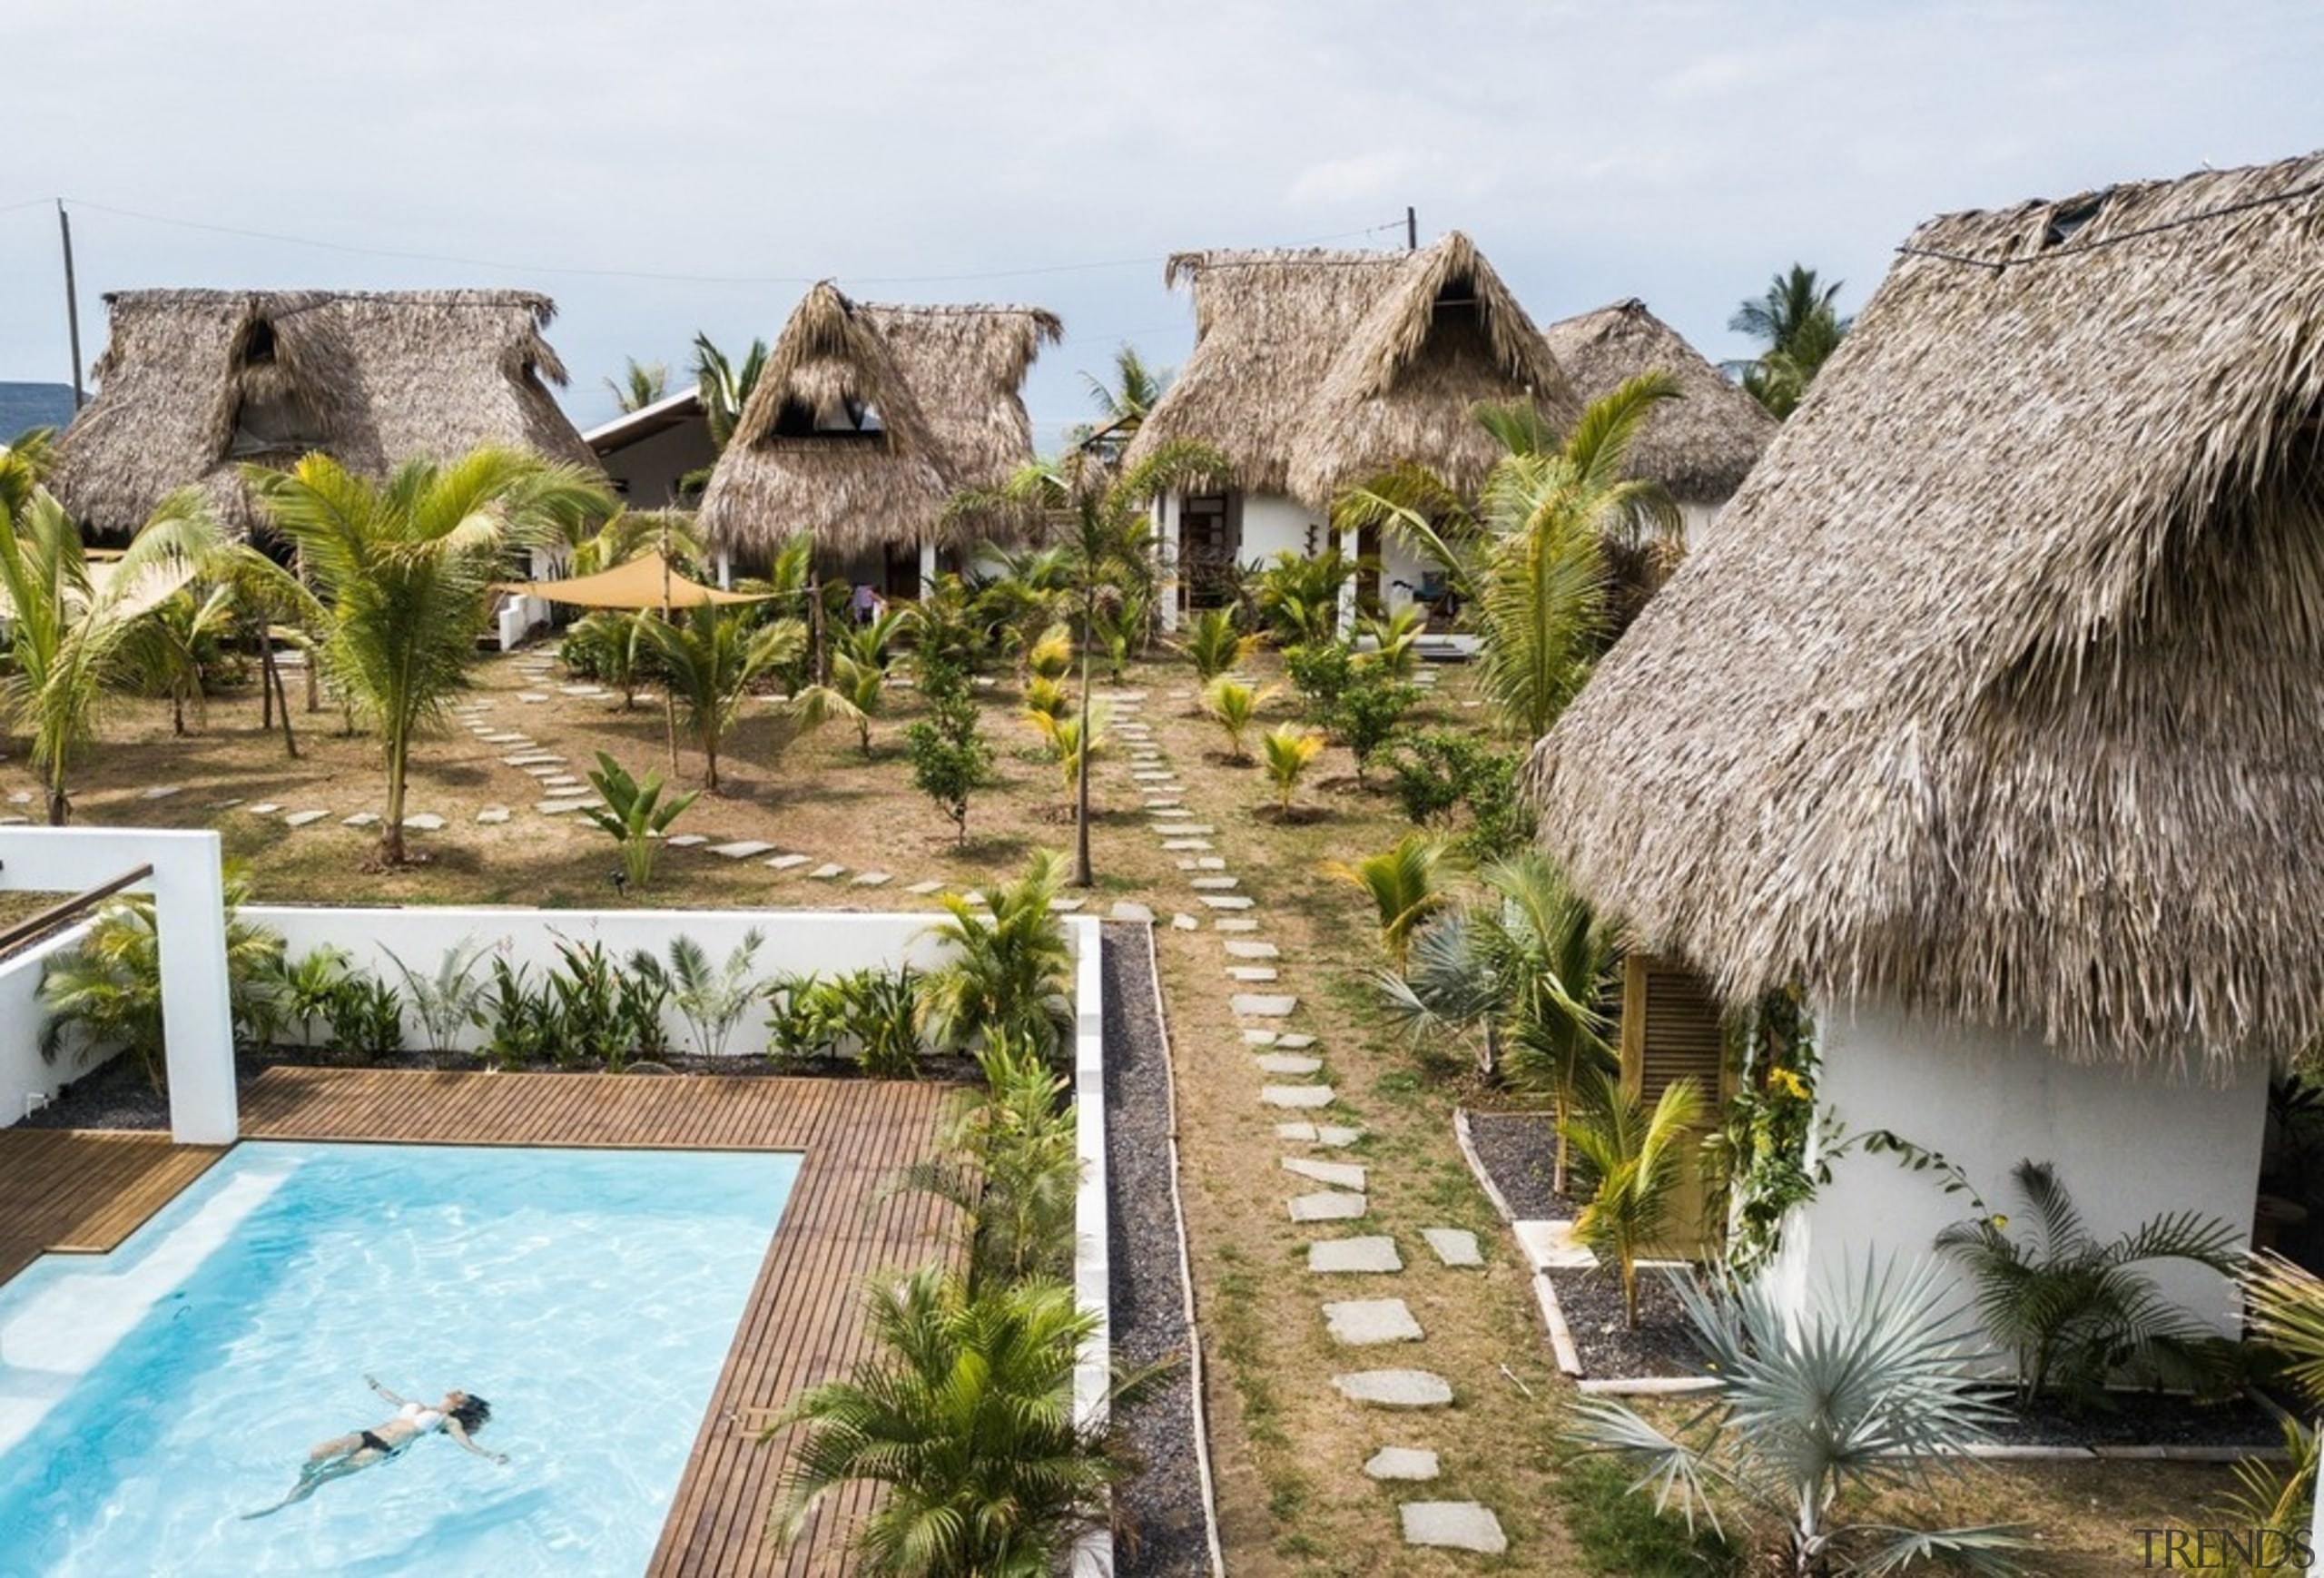 Swell - a surf and lifestyle hotel - building, eco hotel, house, landscape, leisure, real estate, resort, swimming pool, thatching, tourism, vacation, brown, white